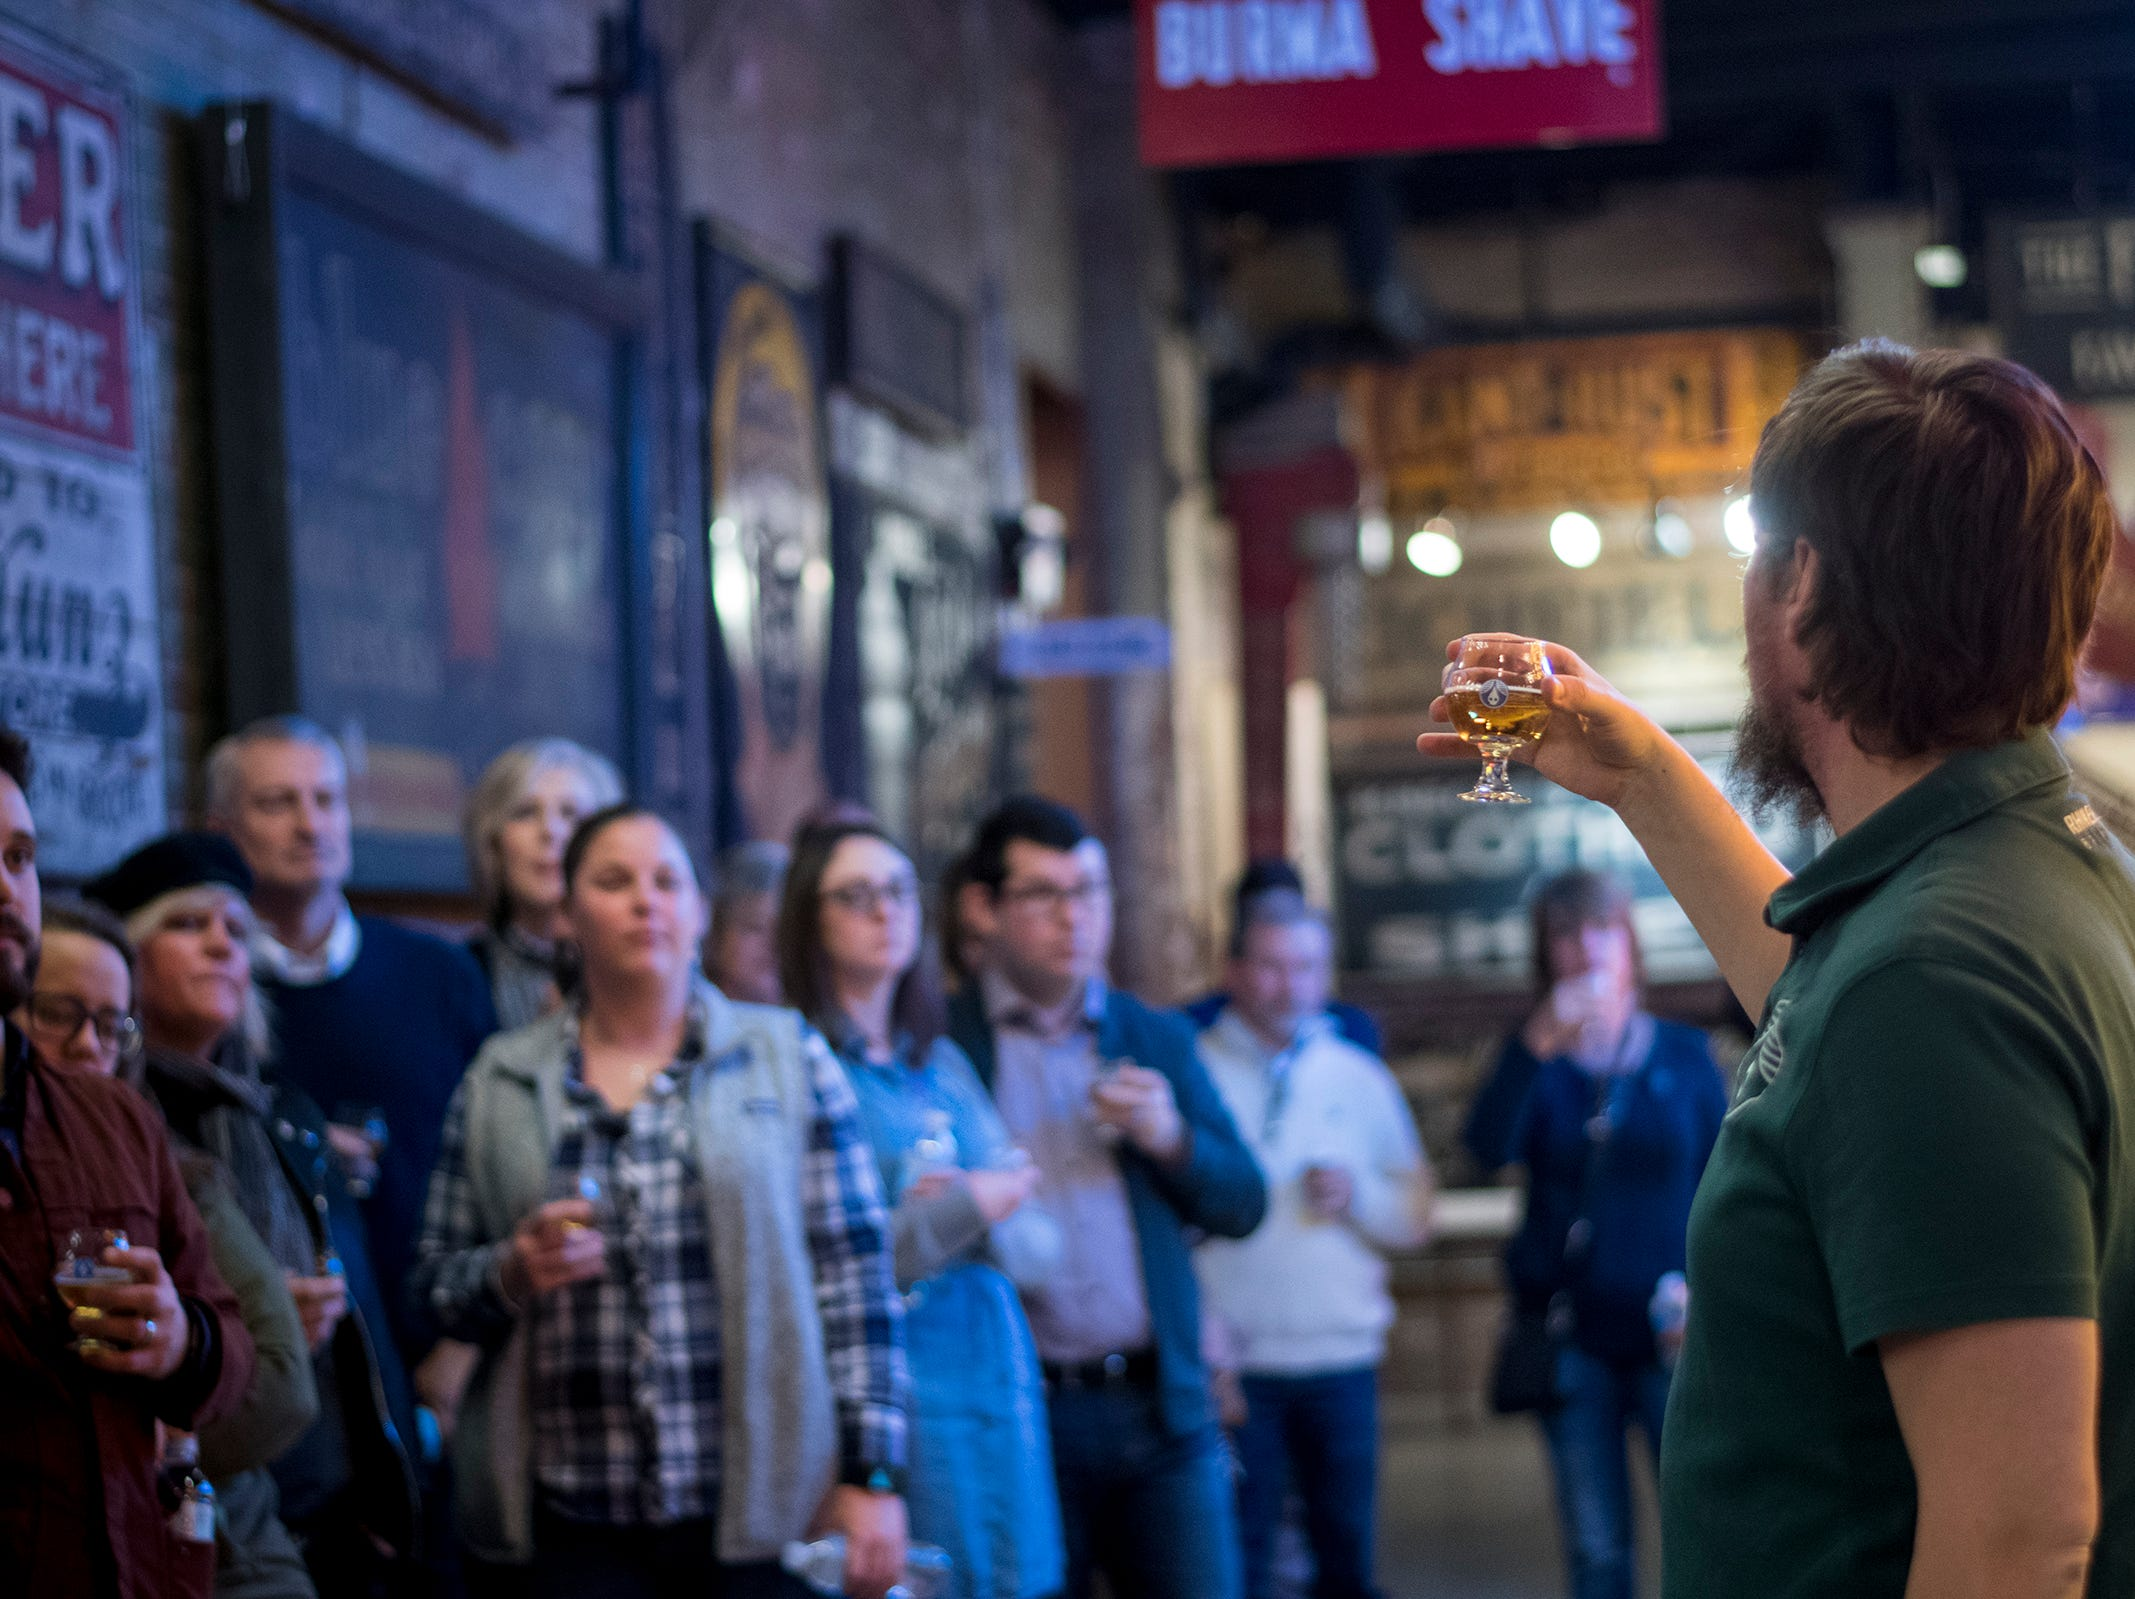 TJ DiNino tells guests about one of the Rhinegeist beers featured at Signs and Suds at the American Sign Museum Thursday, January 24, 2019 in Cincinnati, Ohio.